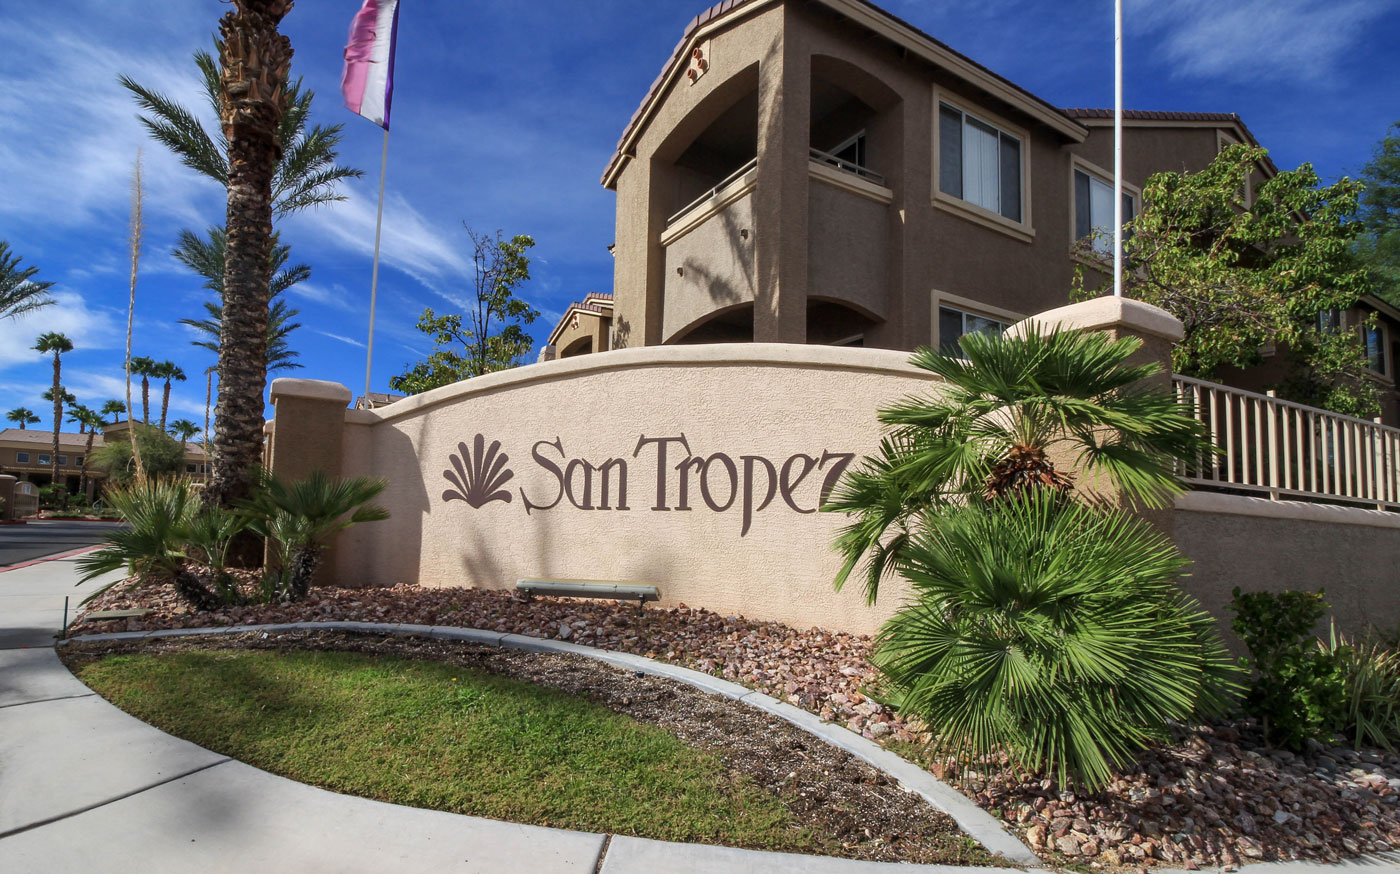 Entrance to San Tropez in Las Vegas, NV.